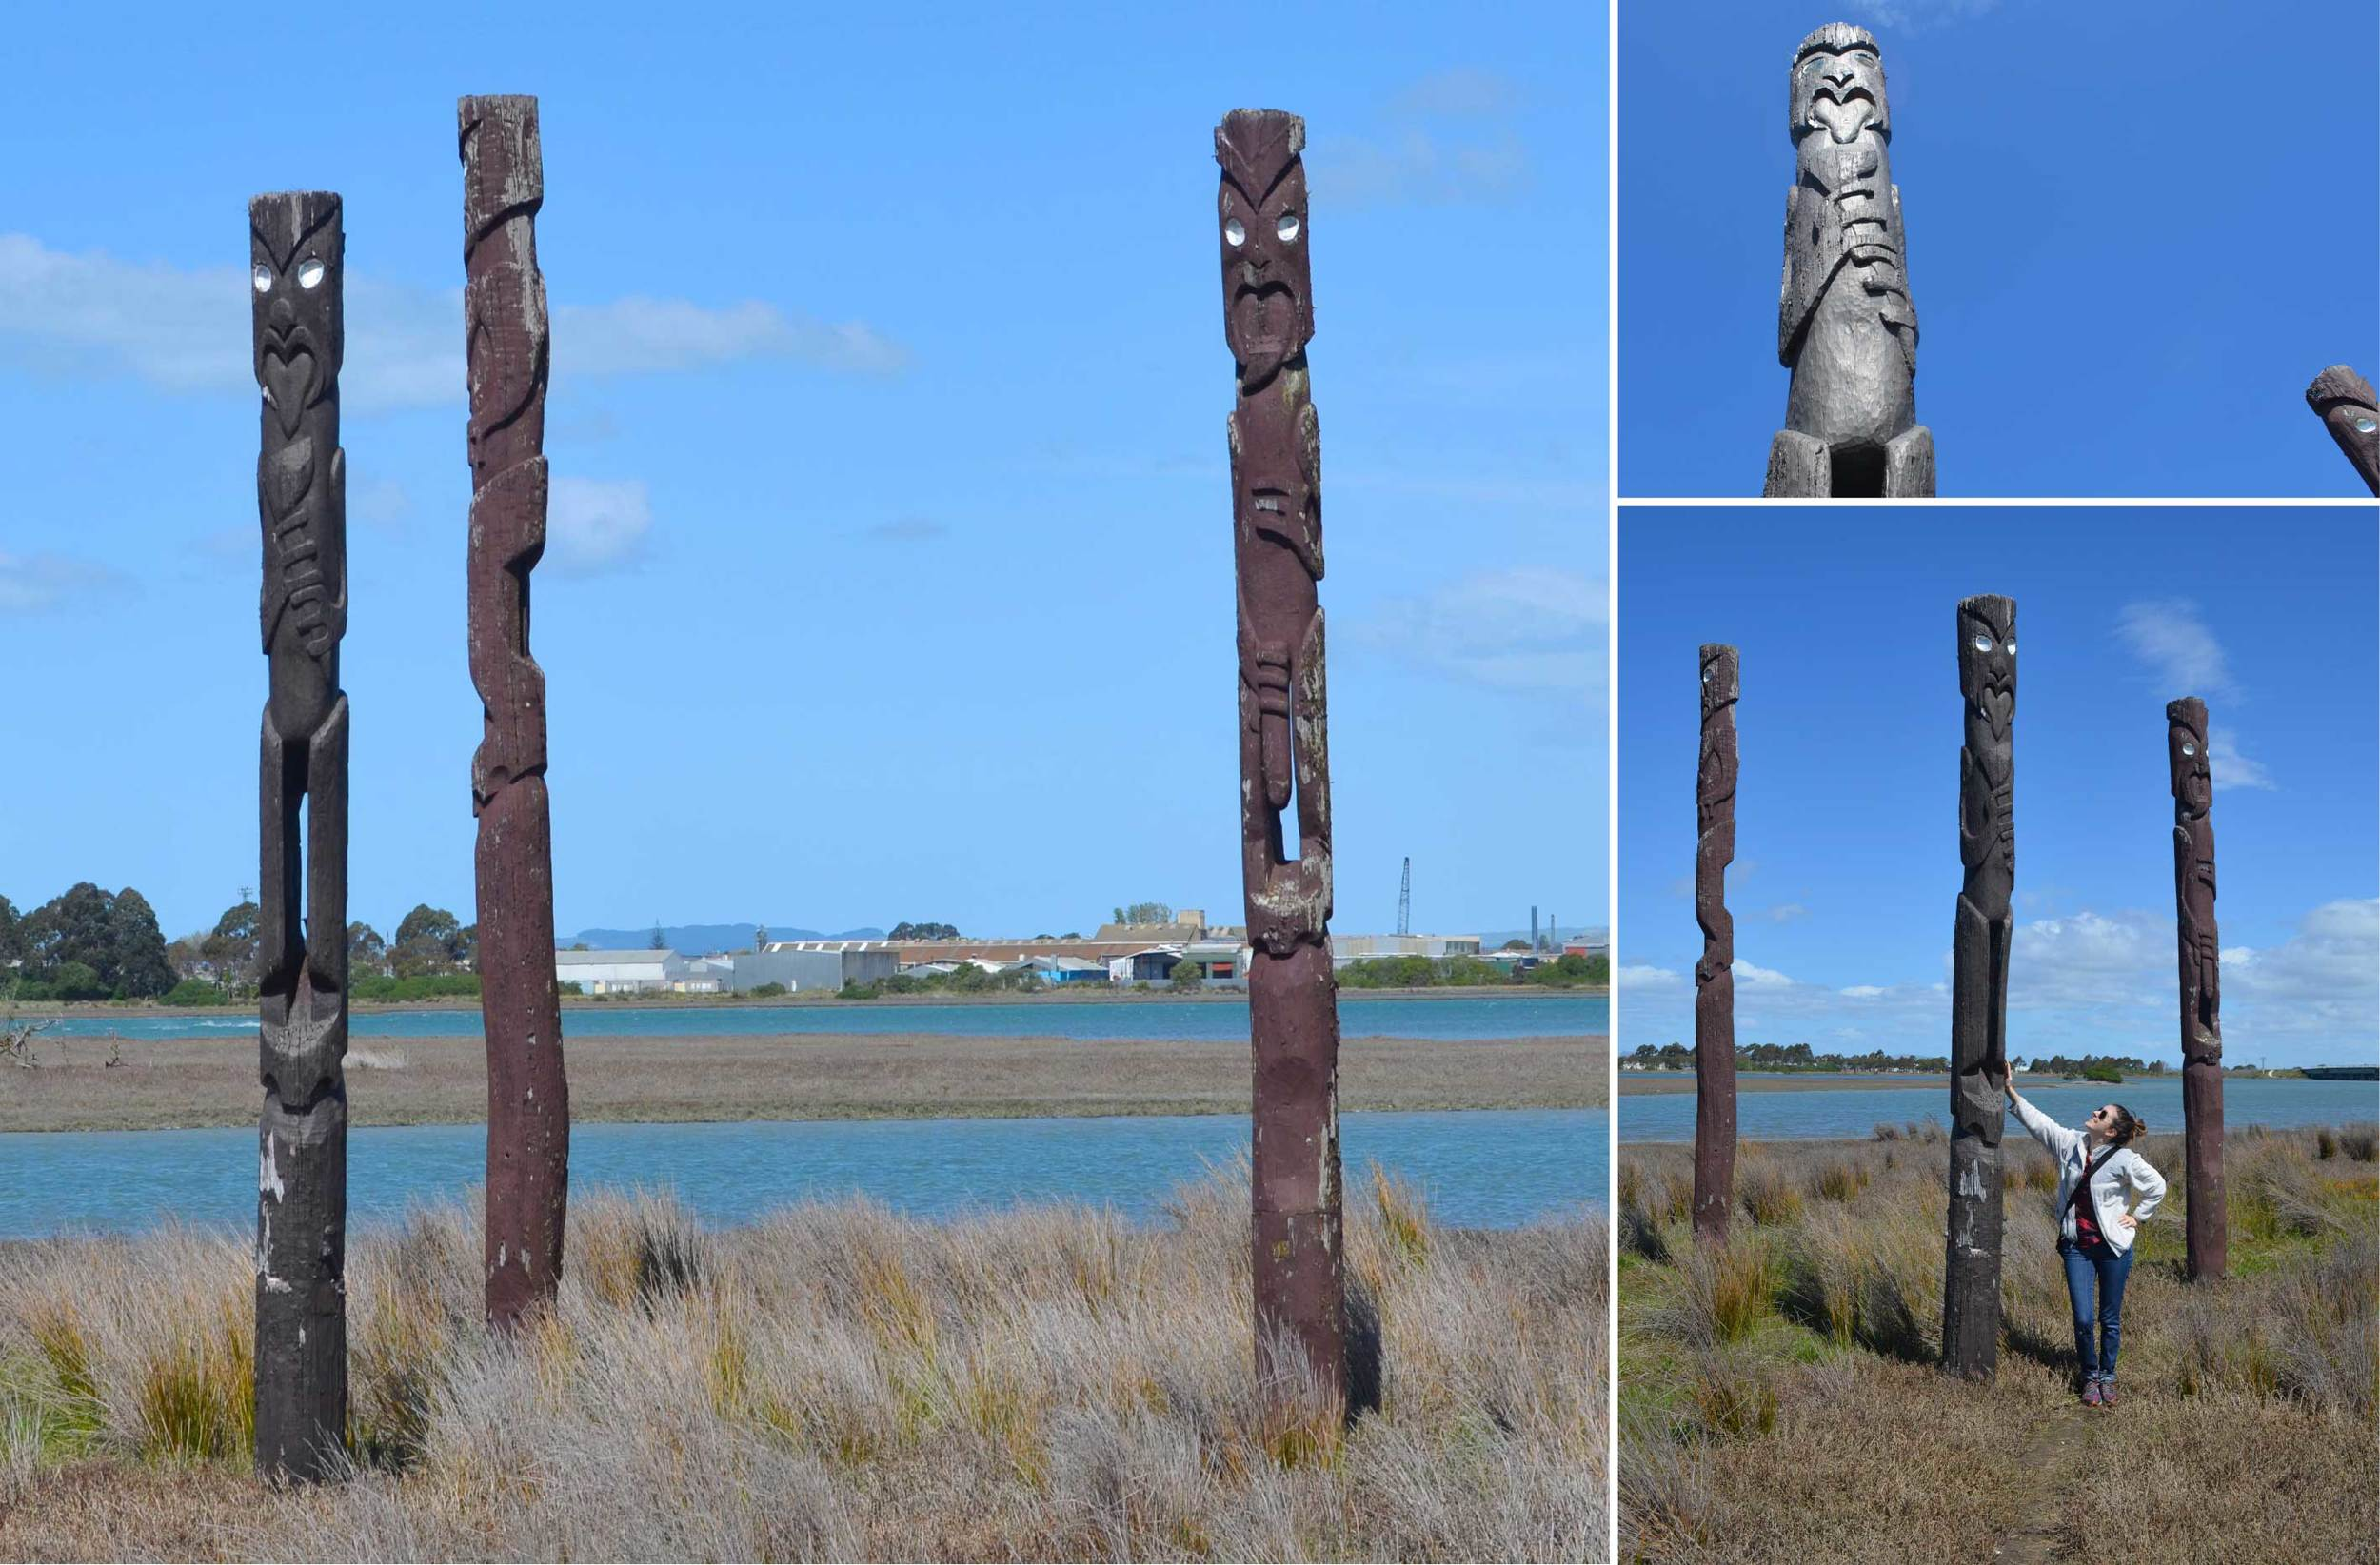 We found lots of Maori carvings along the track and in the middle of the estuary.